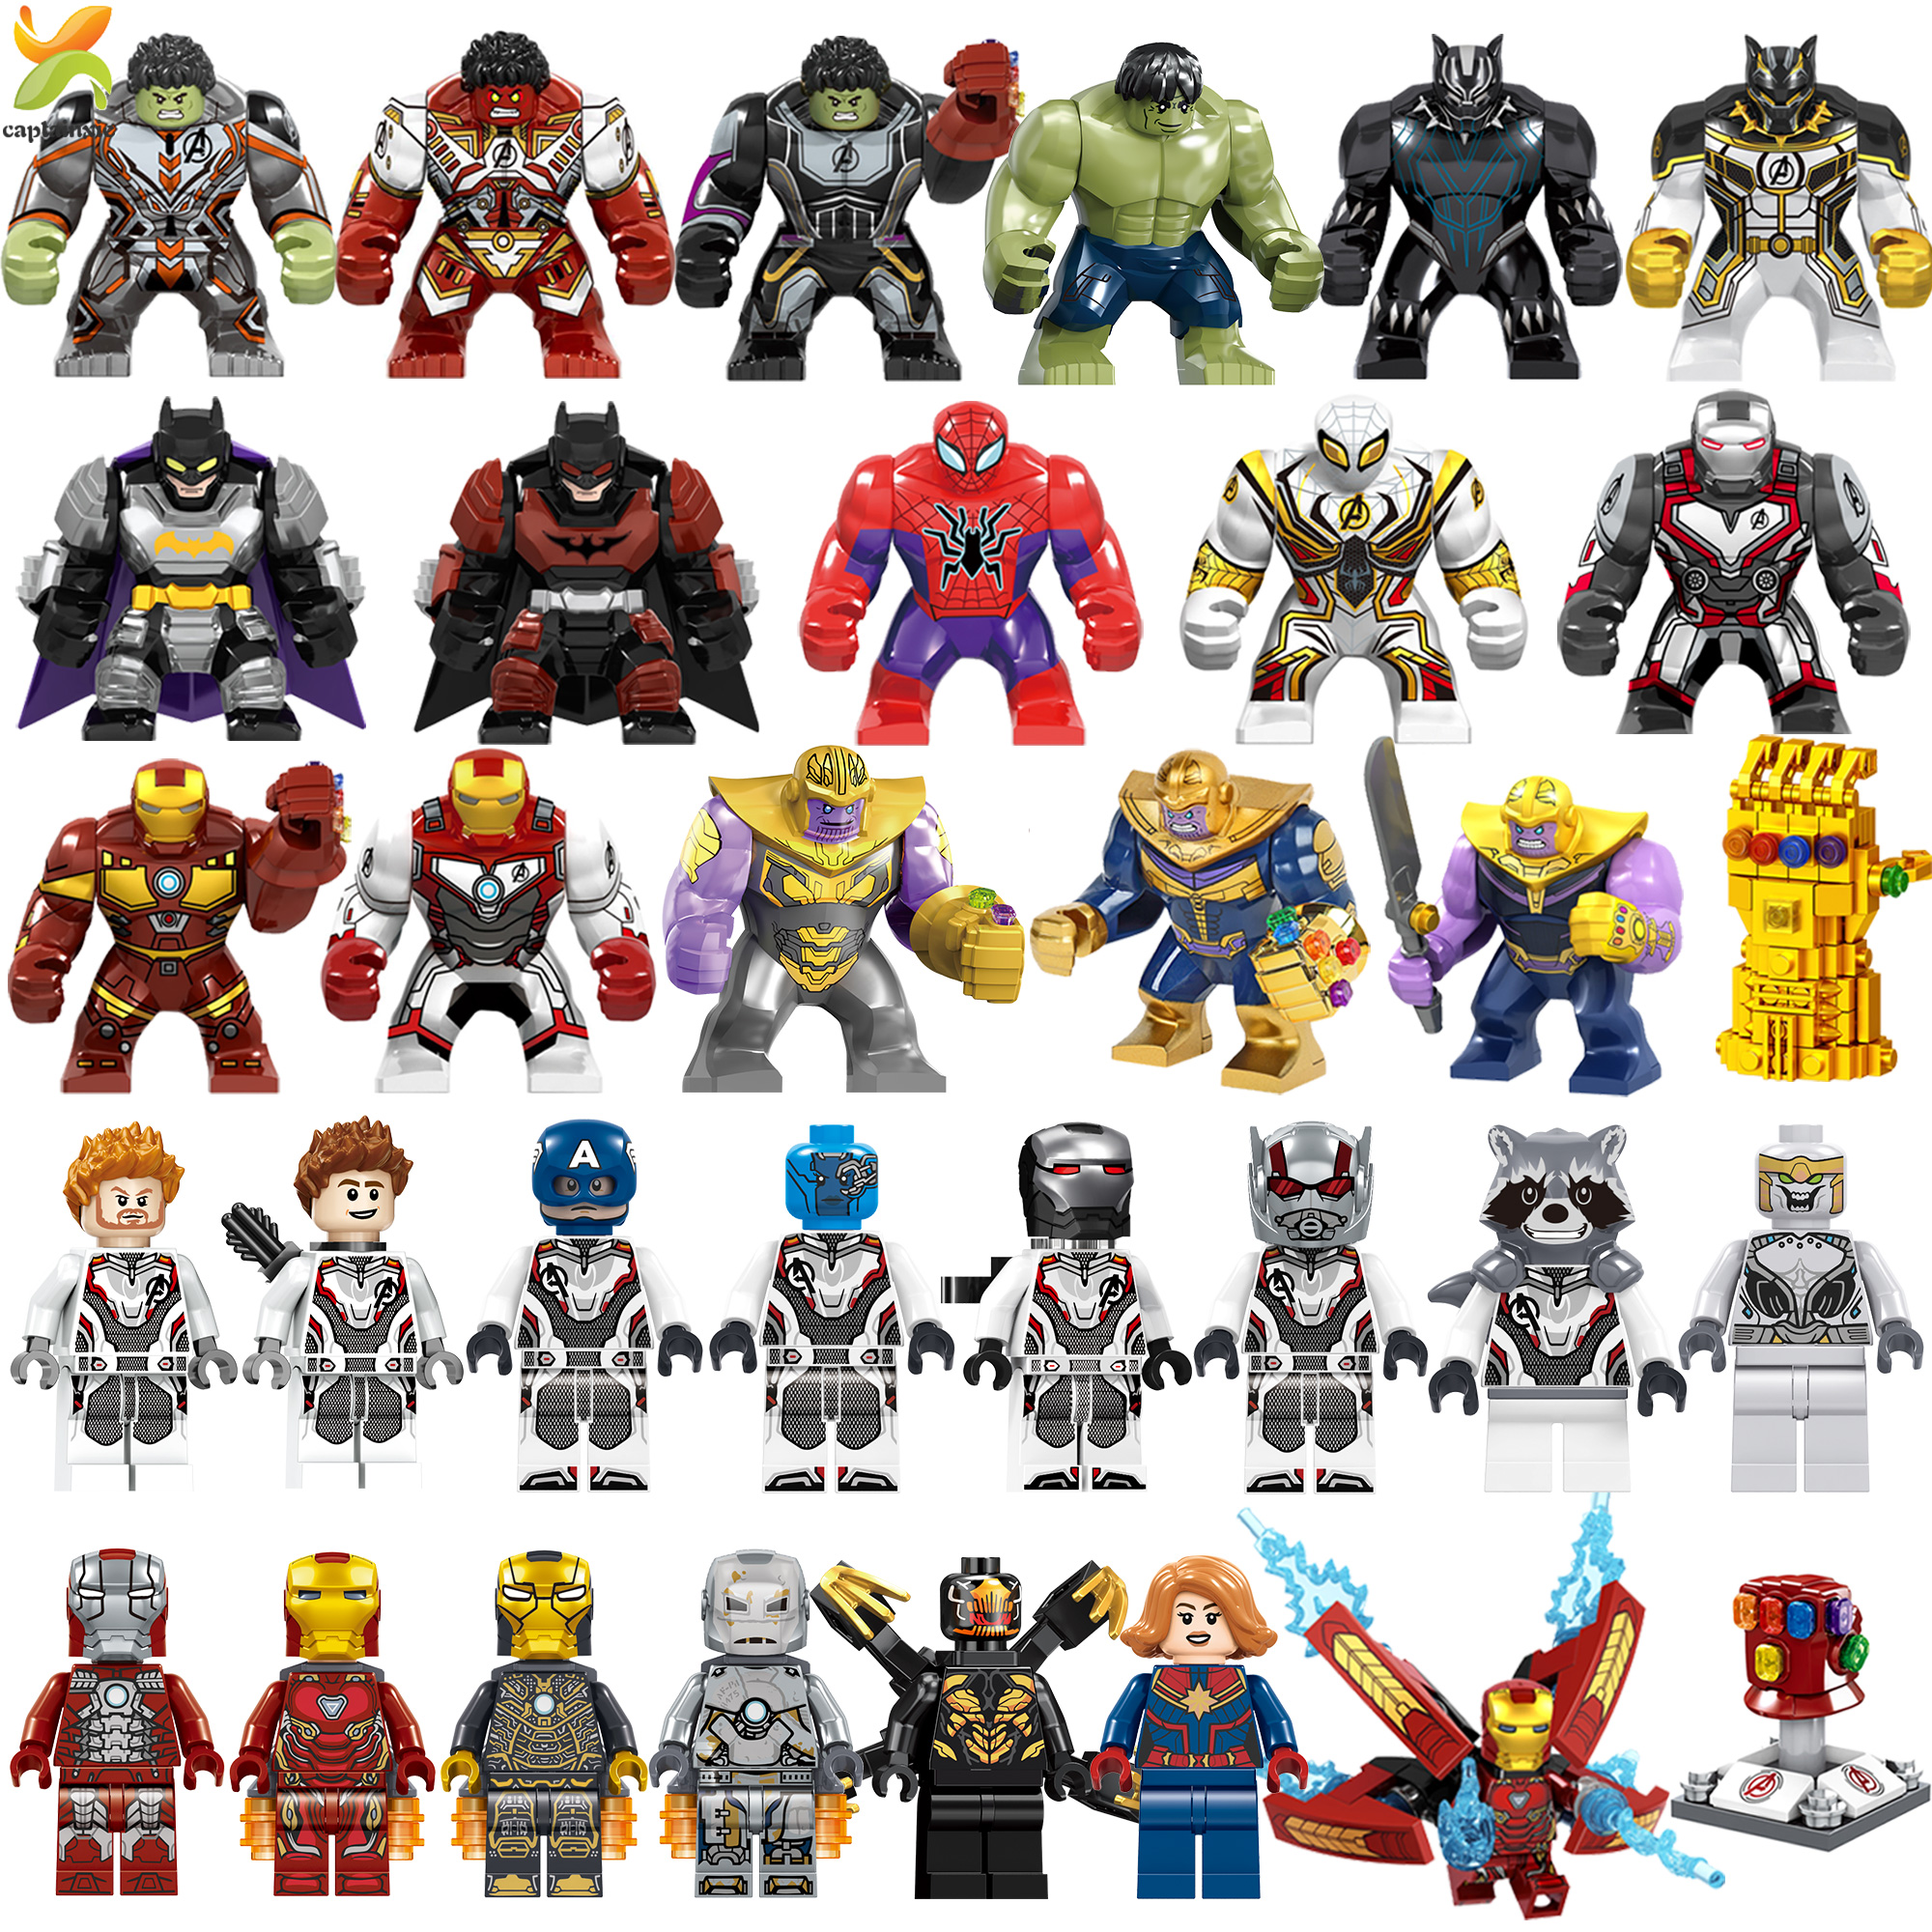 Avengers Endgame Marvel Super Hero Captain War Machine Compatible Legoed Hulk Thanos Galaxy iron man Figures Building Blocks Toy(China)